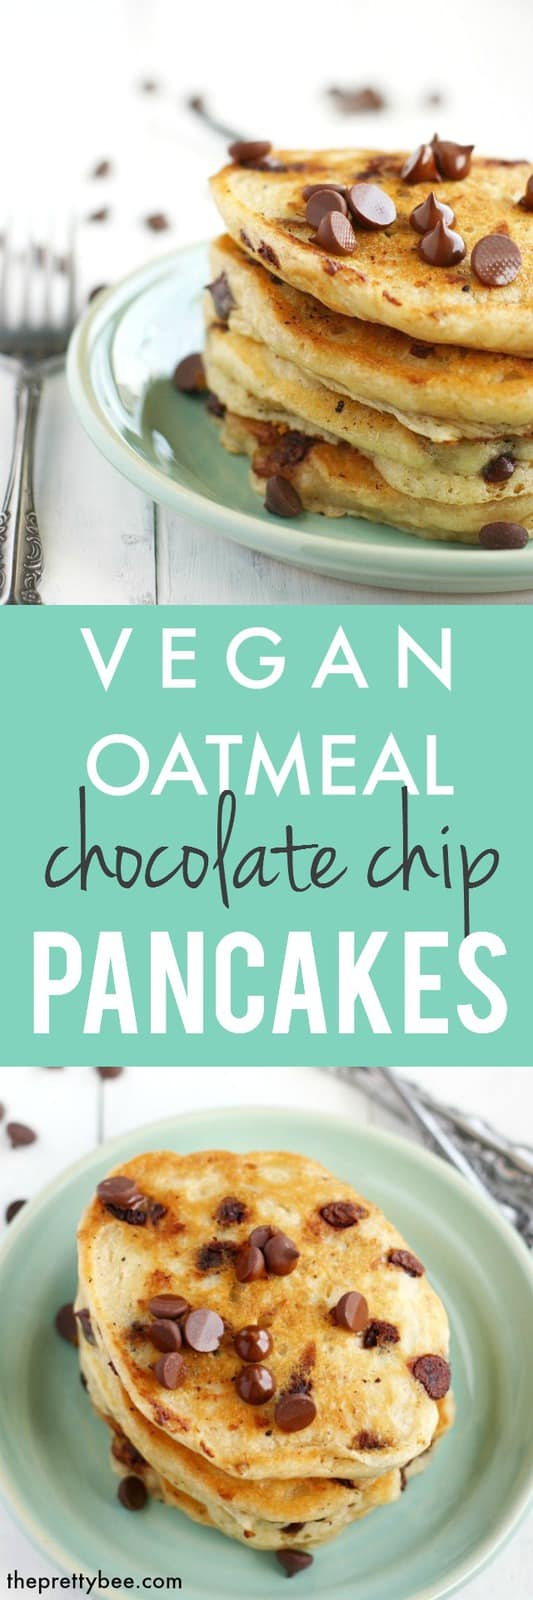 easy vegan oatmeal chocolate chip pancakes